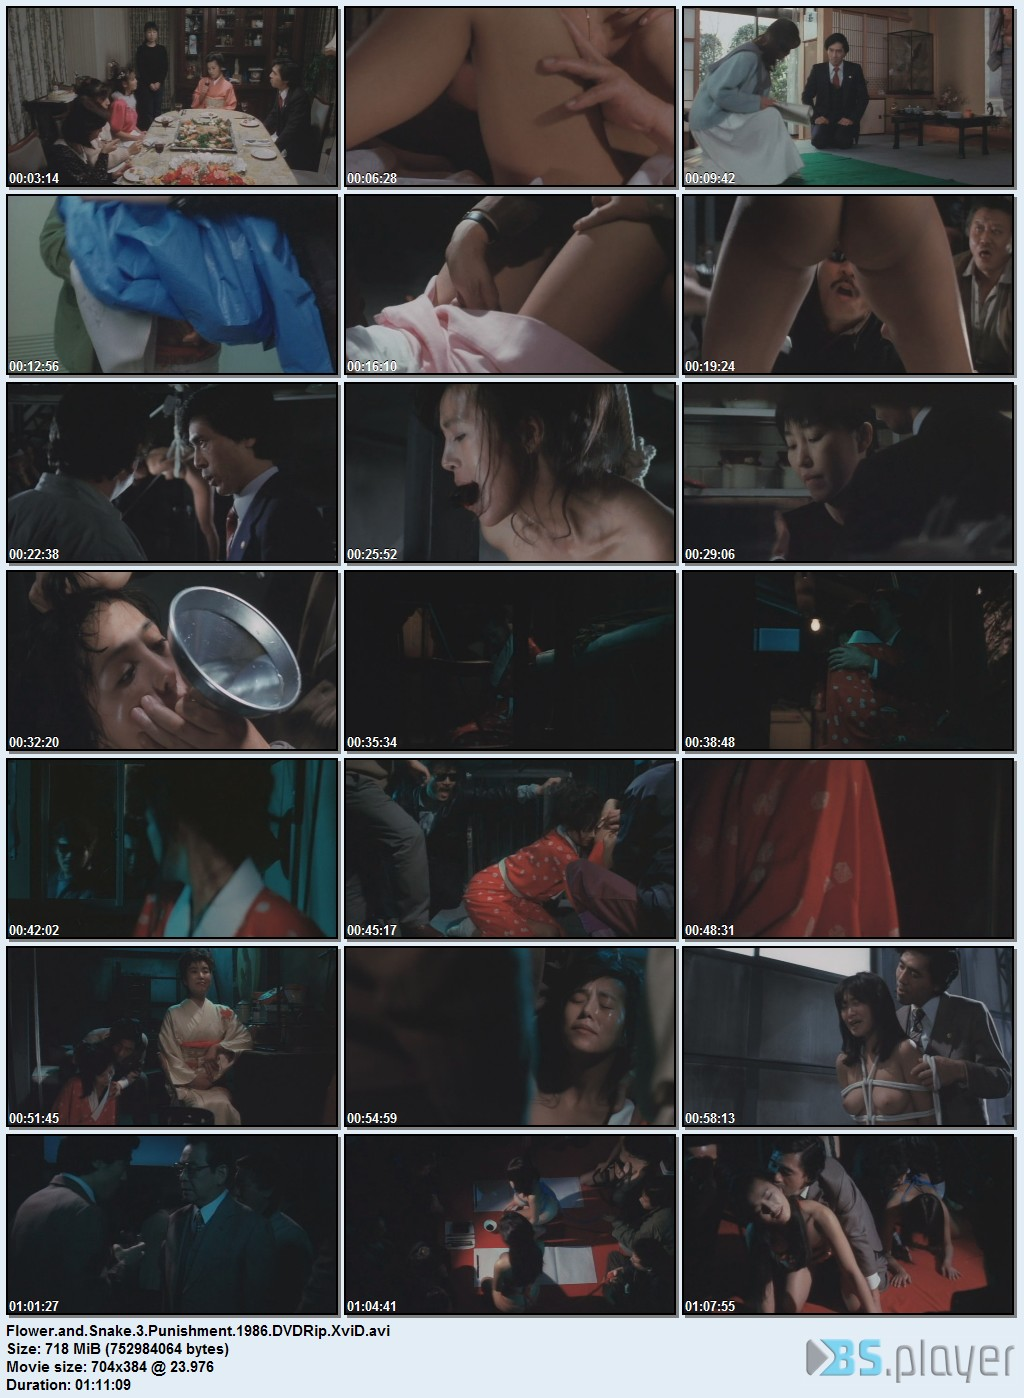 Flower.and.Snake.3.Punishment.1986.DVDRip actresses naked